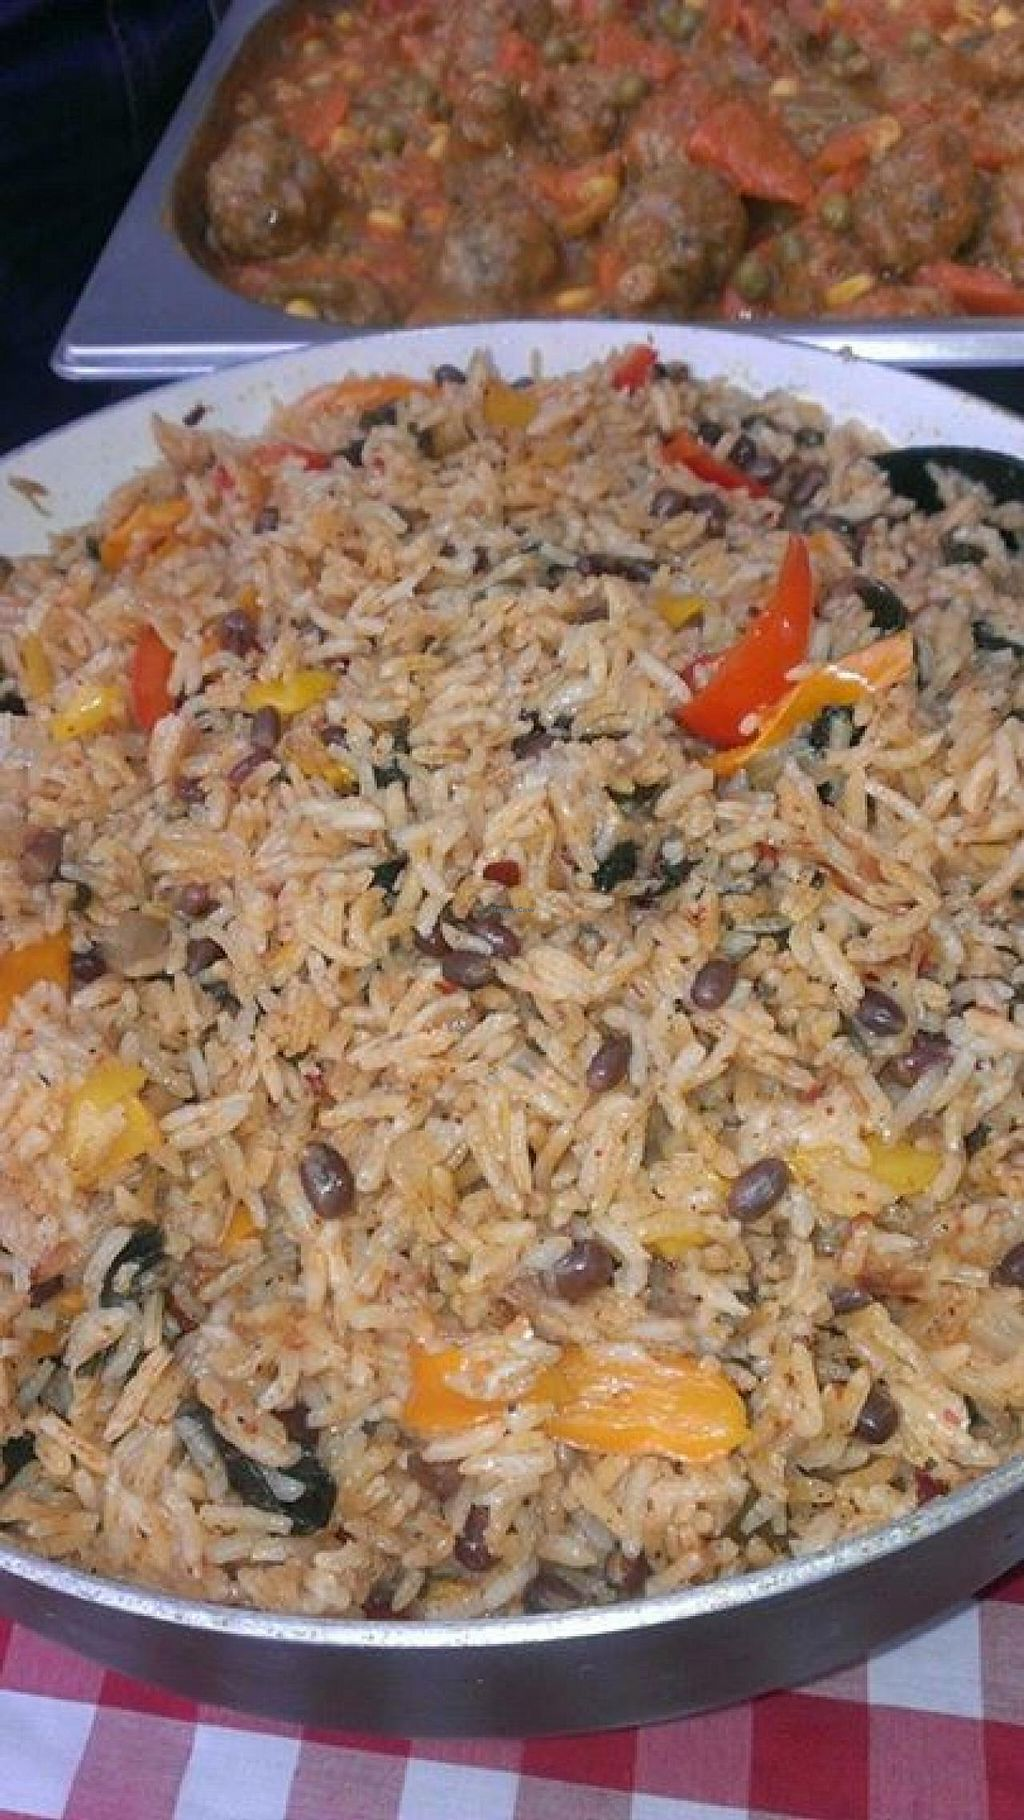 """Photo of Shorashim  by <a href=""""/members/profile/community"""">community</a> <br/>mexican rice  <br/> October 23, 2014  - <a href='/contact/abuse/image/52251/83710'>Report</a>"""